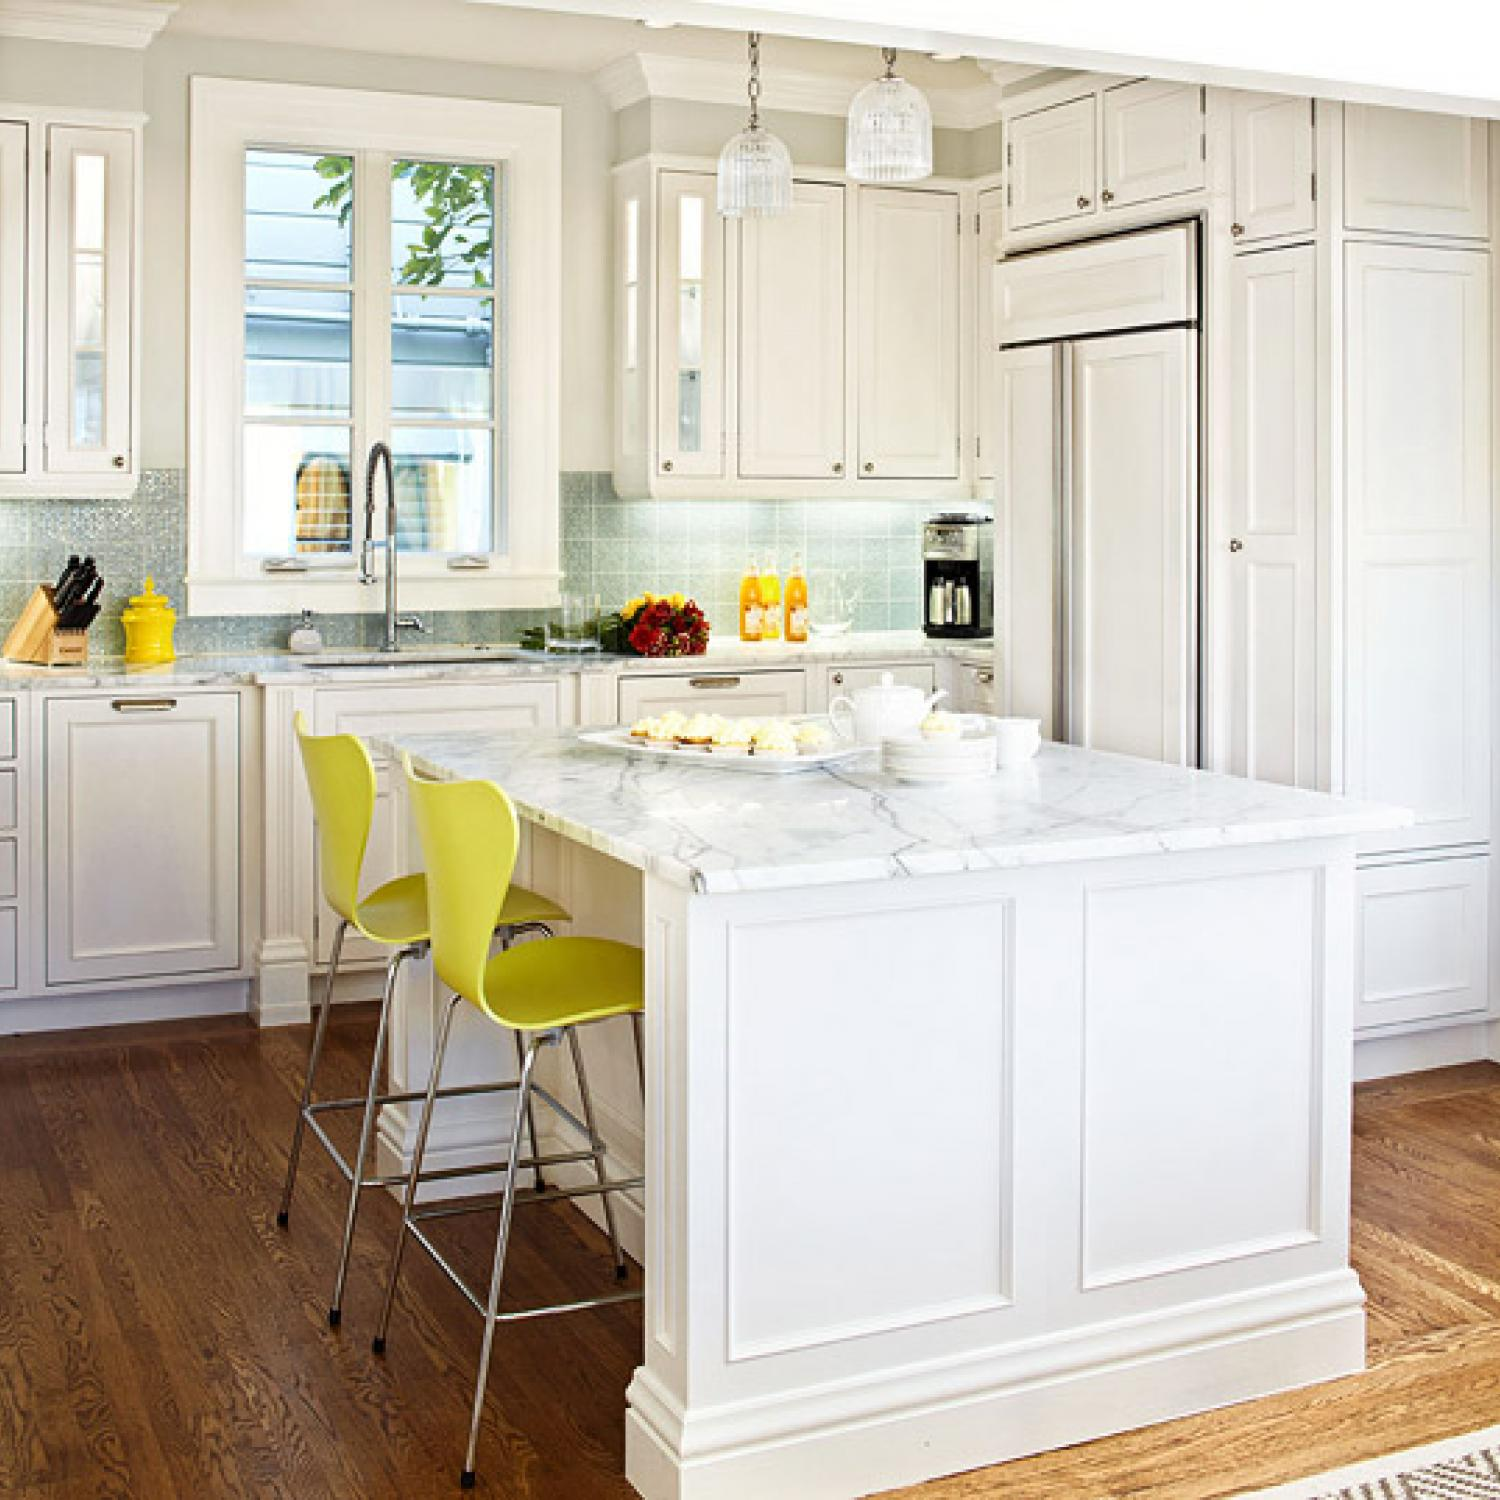 Home Design Ideas Colors: Design Ideas For White Kitchens